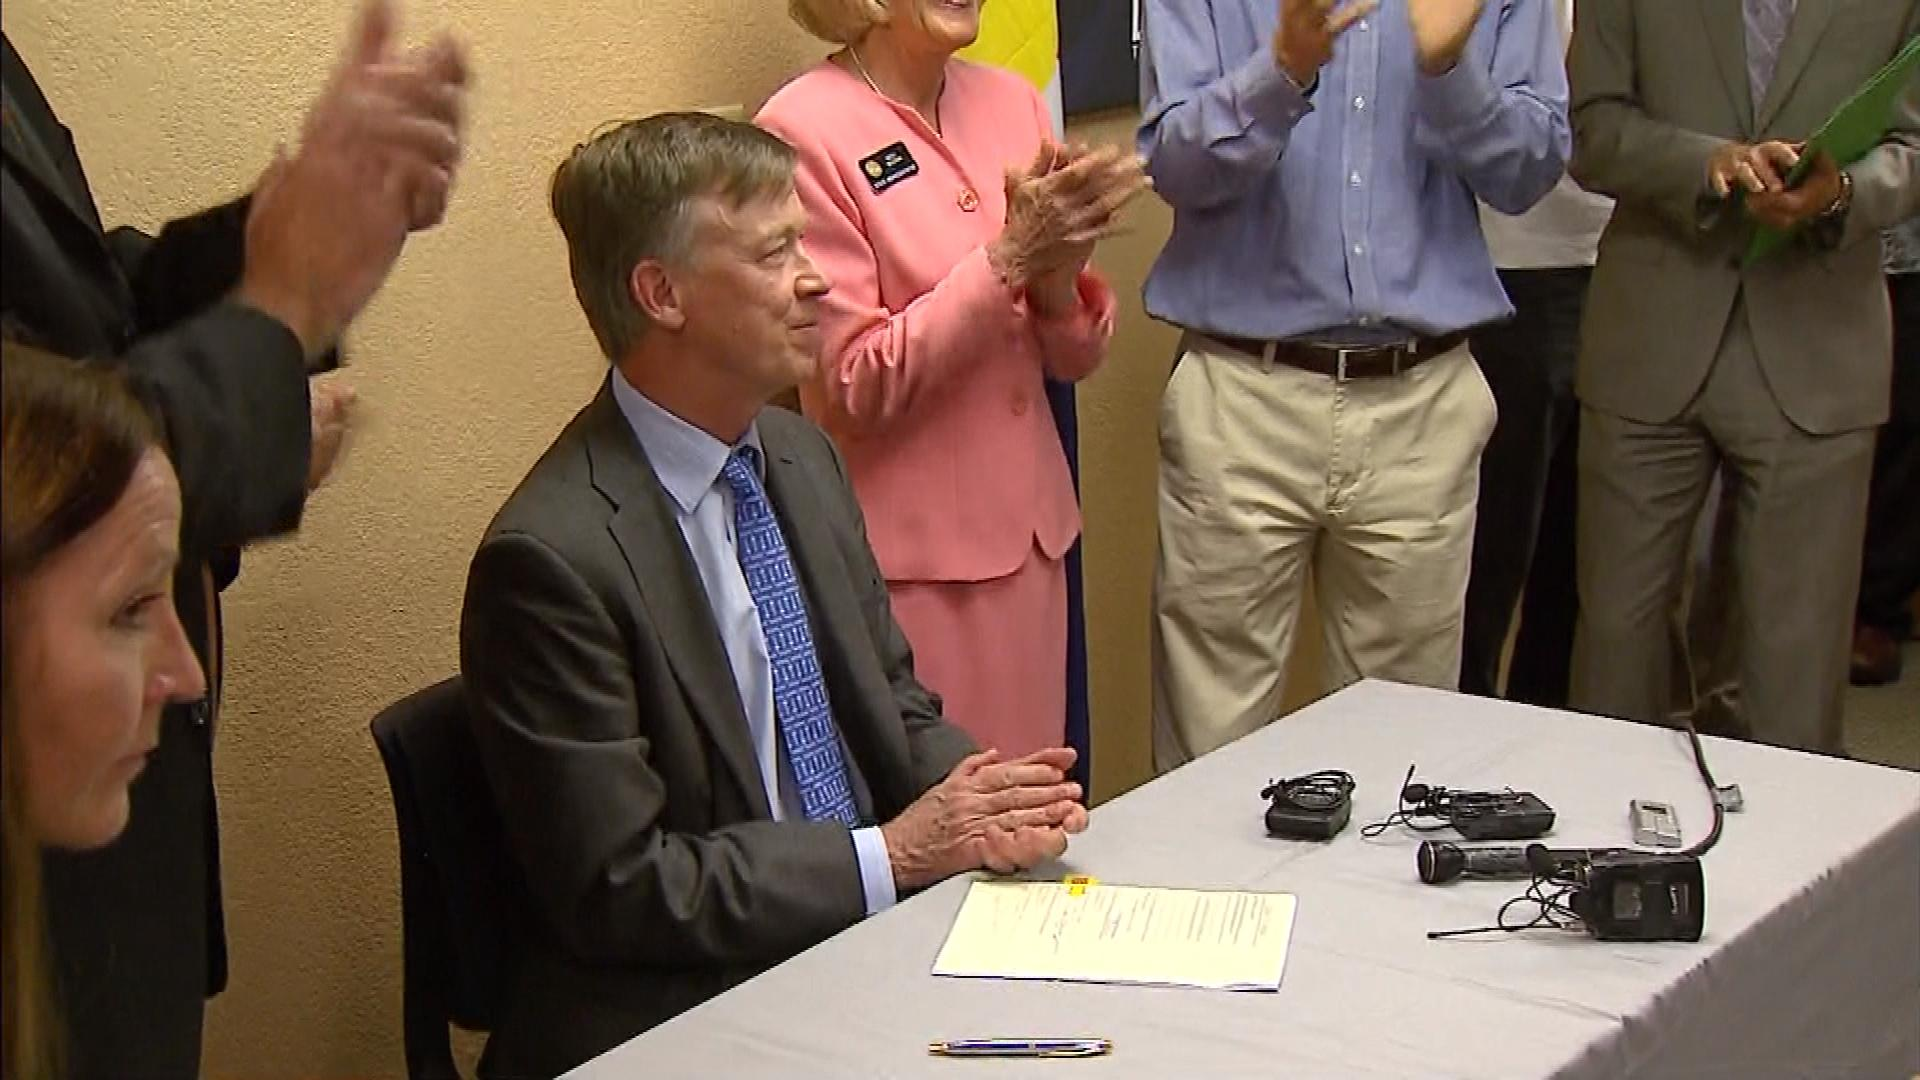 Gov. Hickenlooper signing the bill into law (credit: CBS)